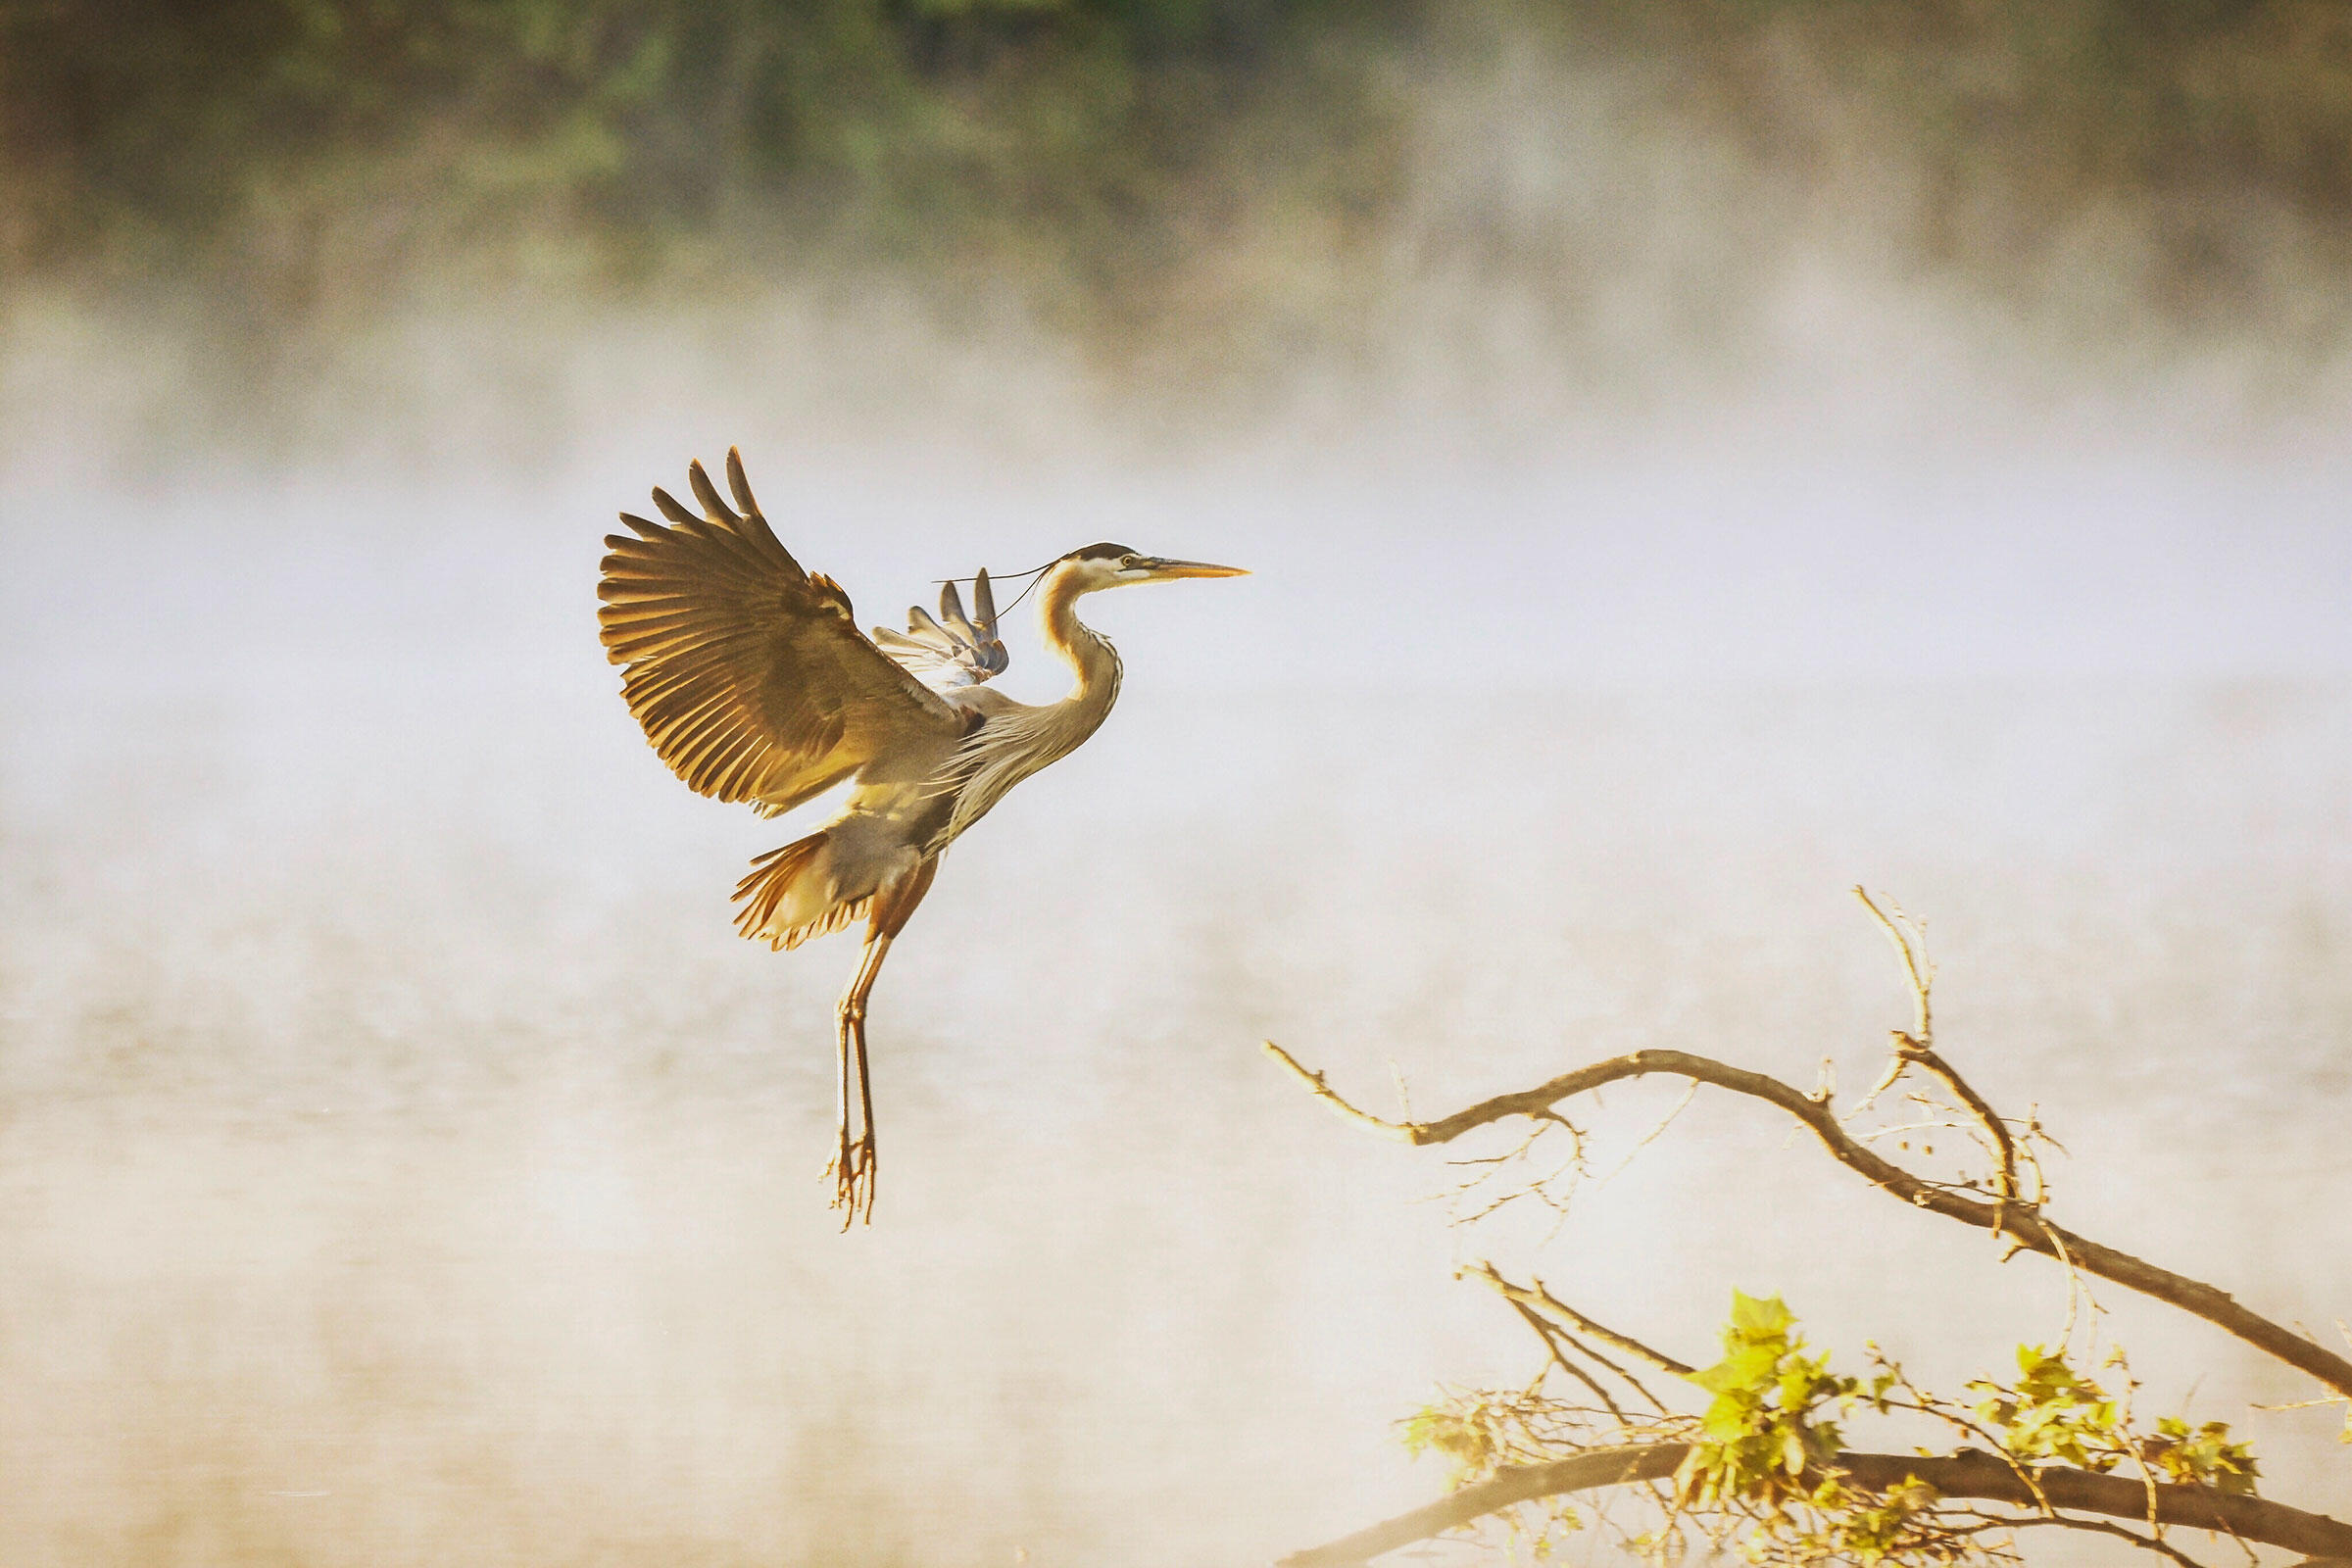 Great Blue Heron. Emily Critcher, Catawba River, Mount Holly, NC